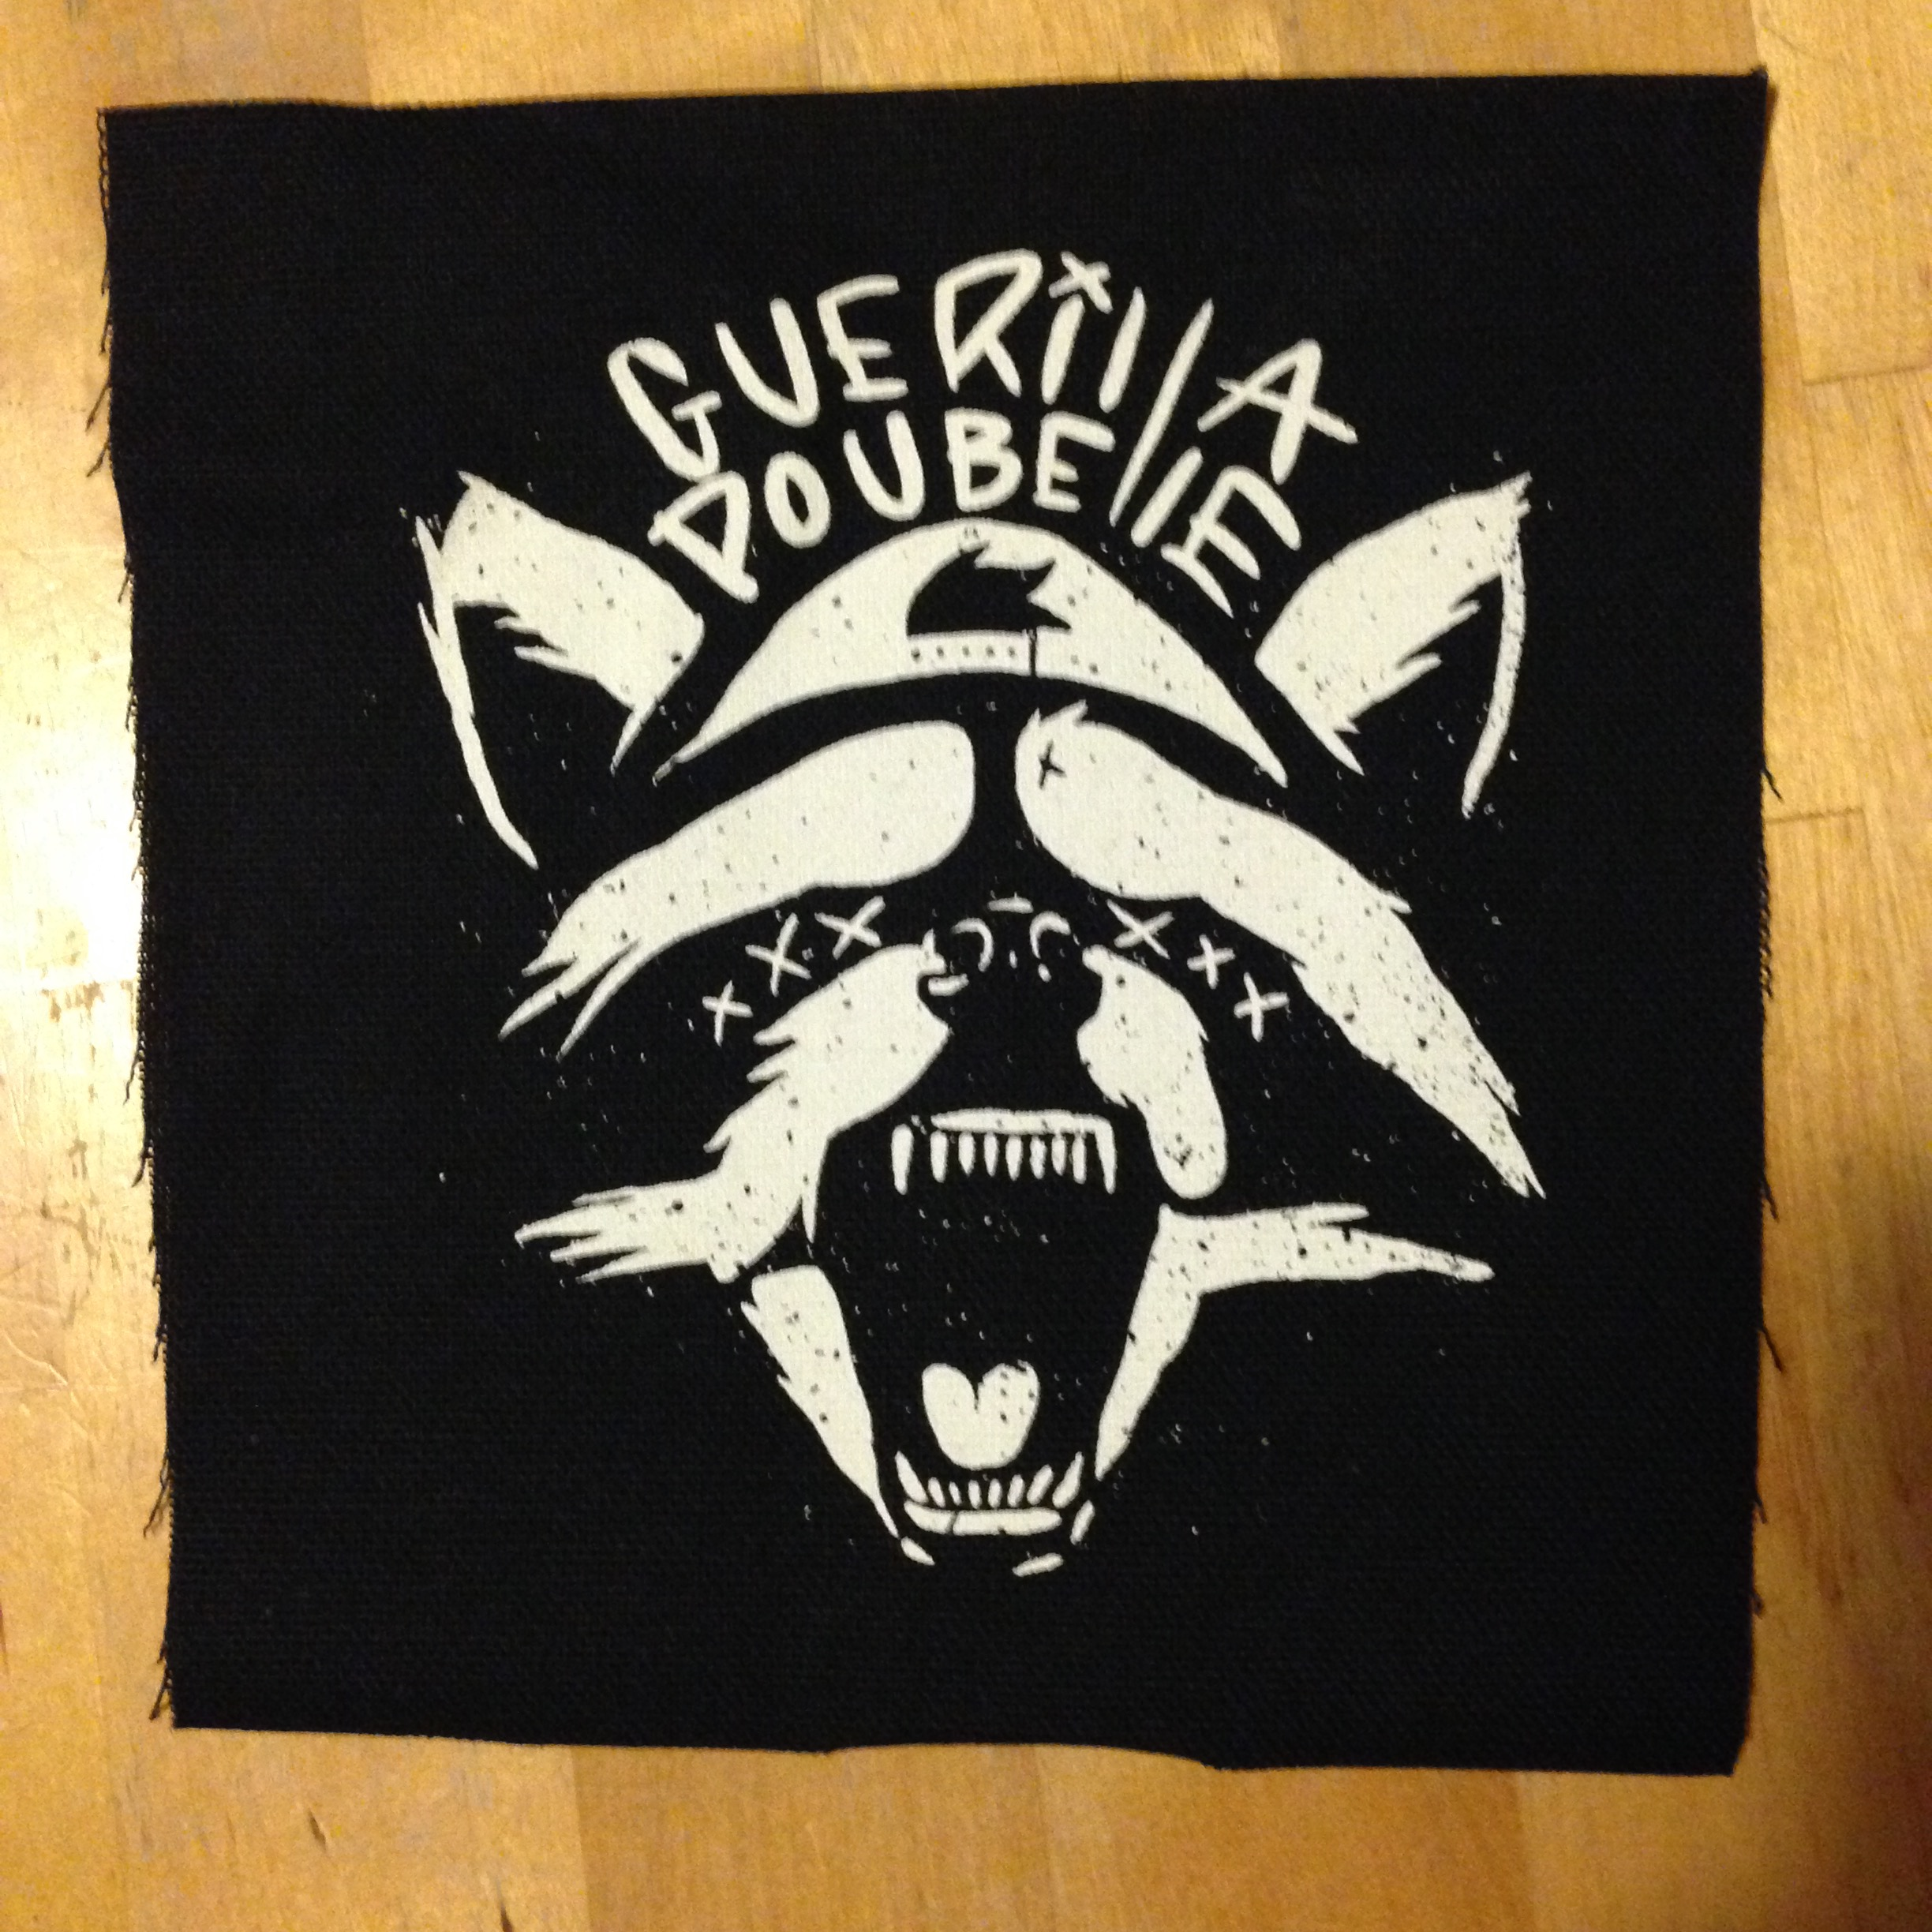 Guerilla Poubelle - patch raccoon